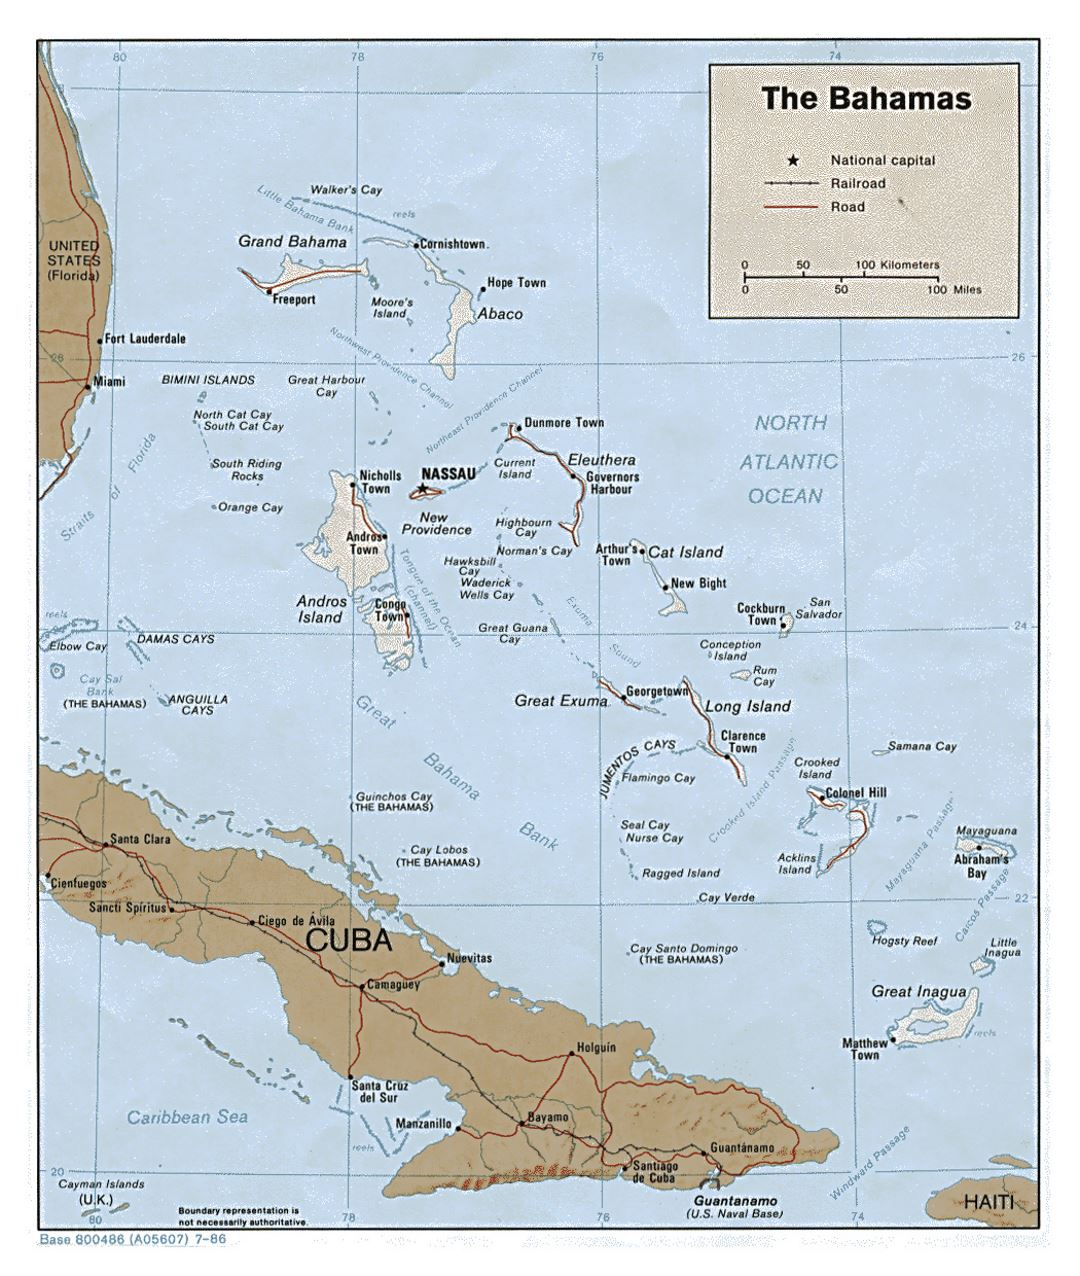 Detailed political map of Bahamas with relief, roads, railroads and major cities - 1986